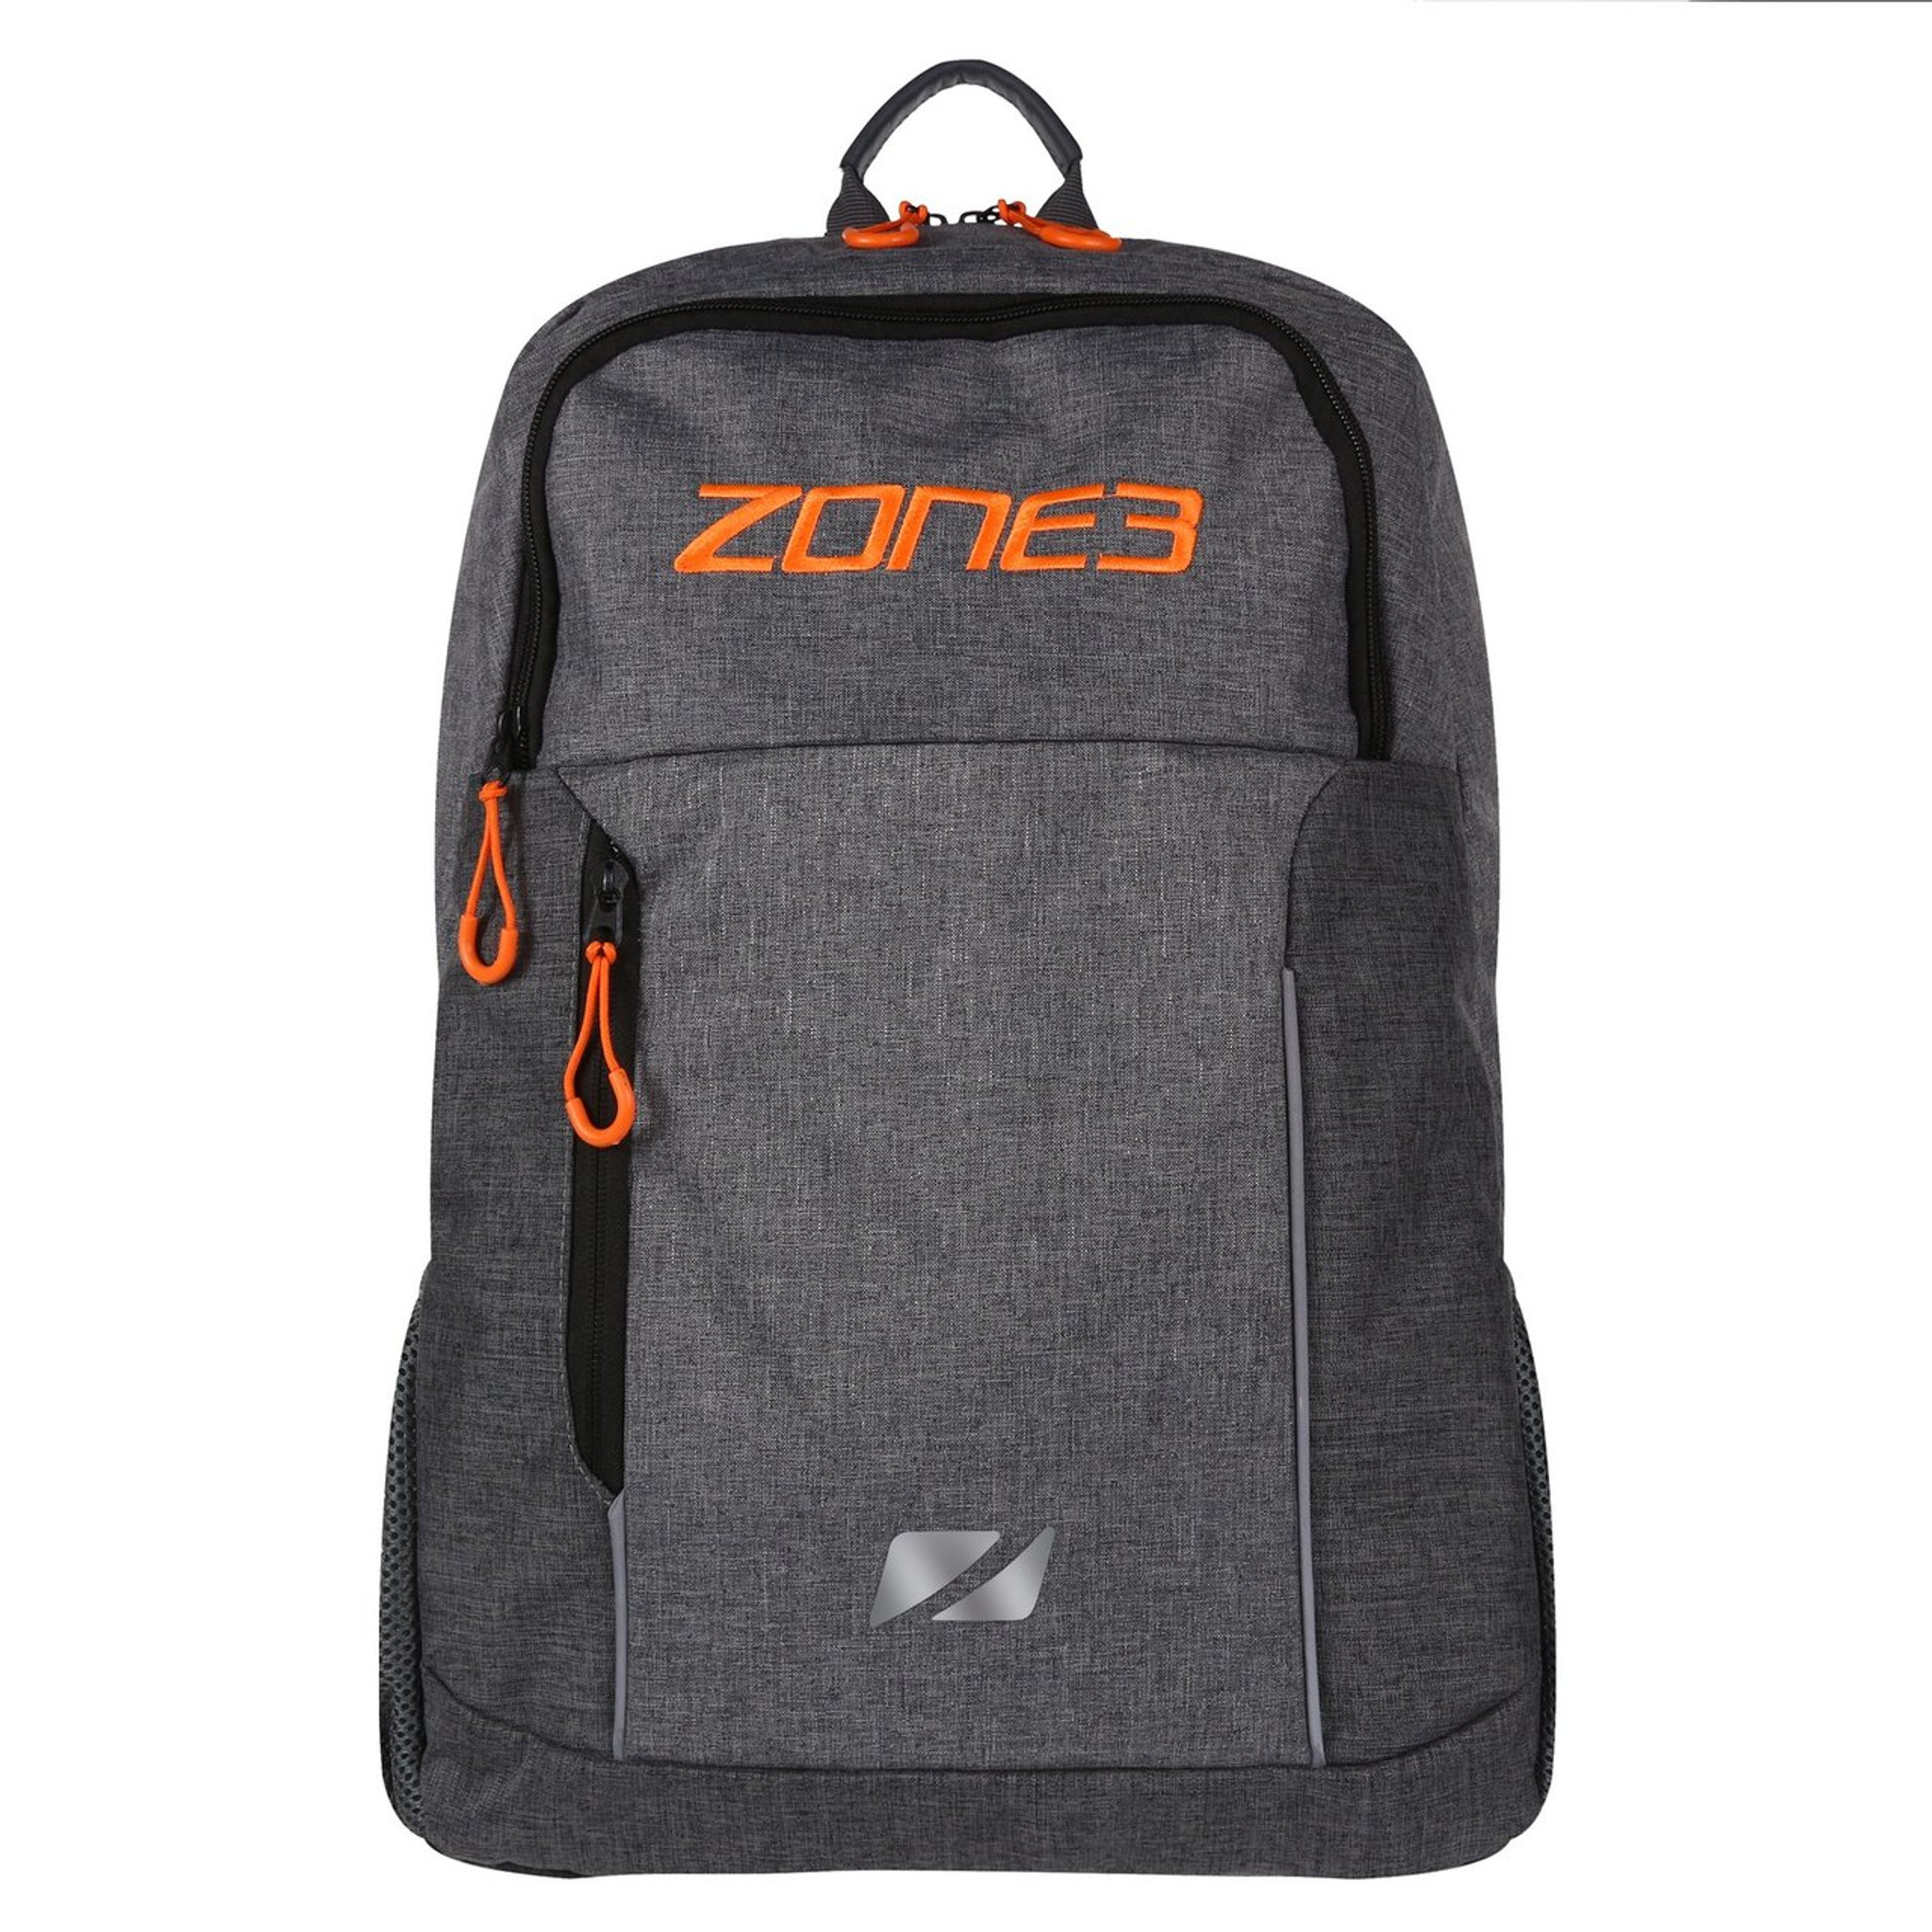 Zone3 - WORKOUT BACKPACK WITH TRI FOCUSED COMPARTMENTS 43a718d7a5609